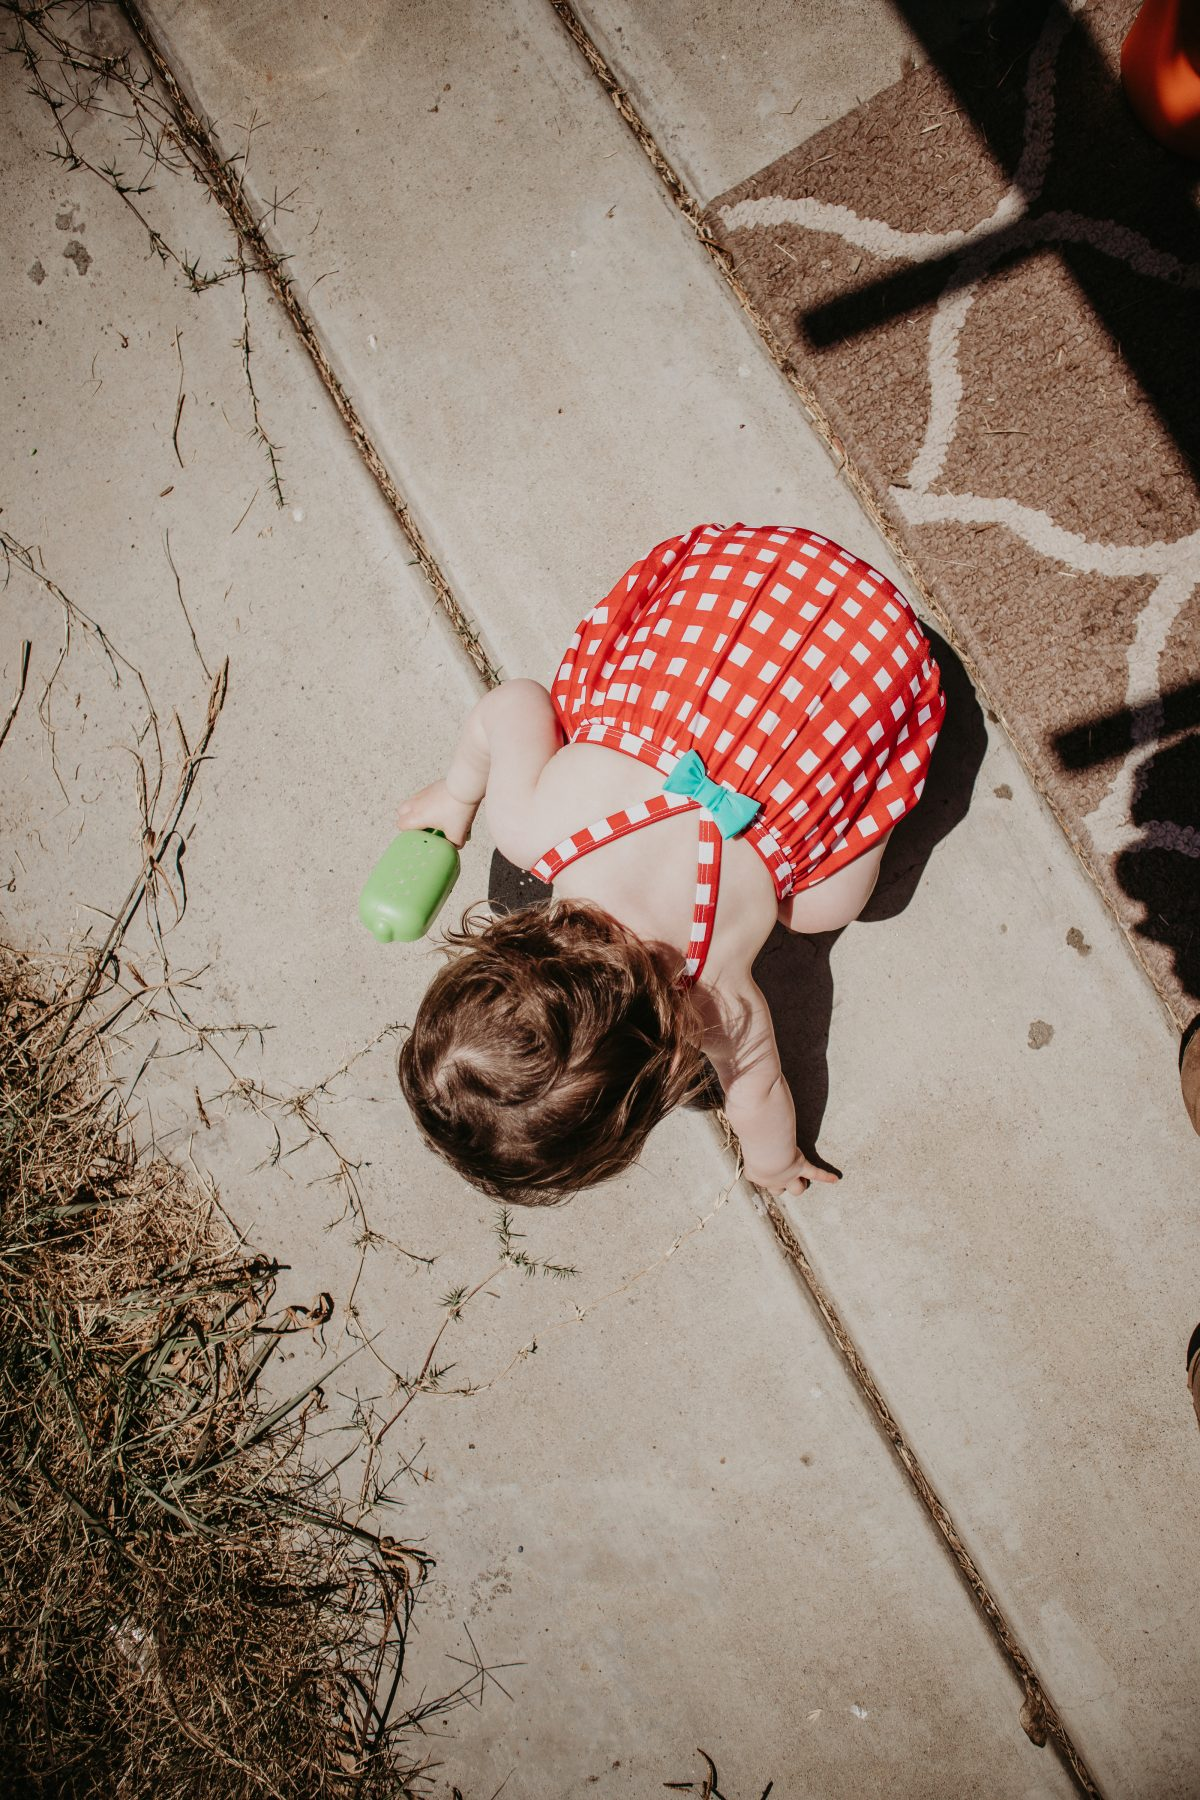 55 Things To Do With Toddlers This Summer | MainelyKeating.com